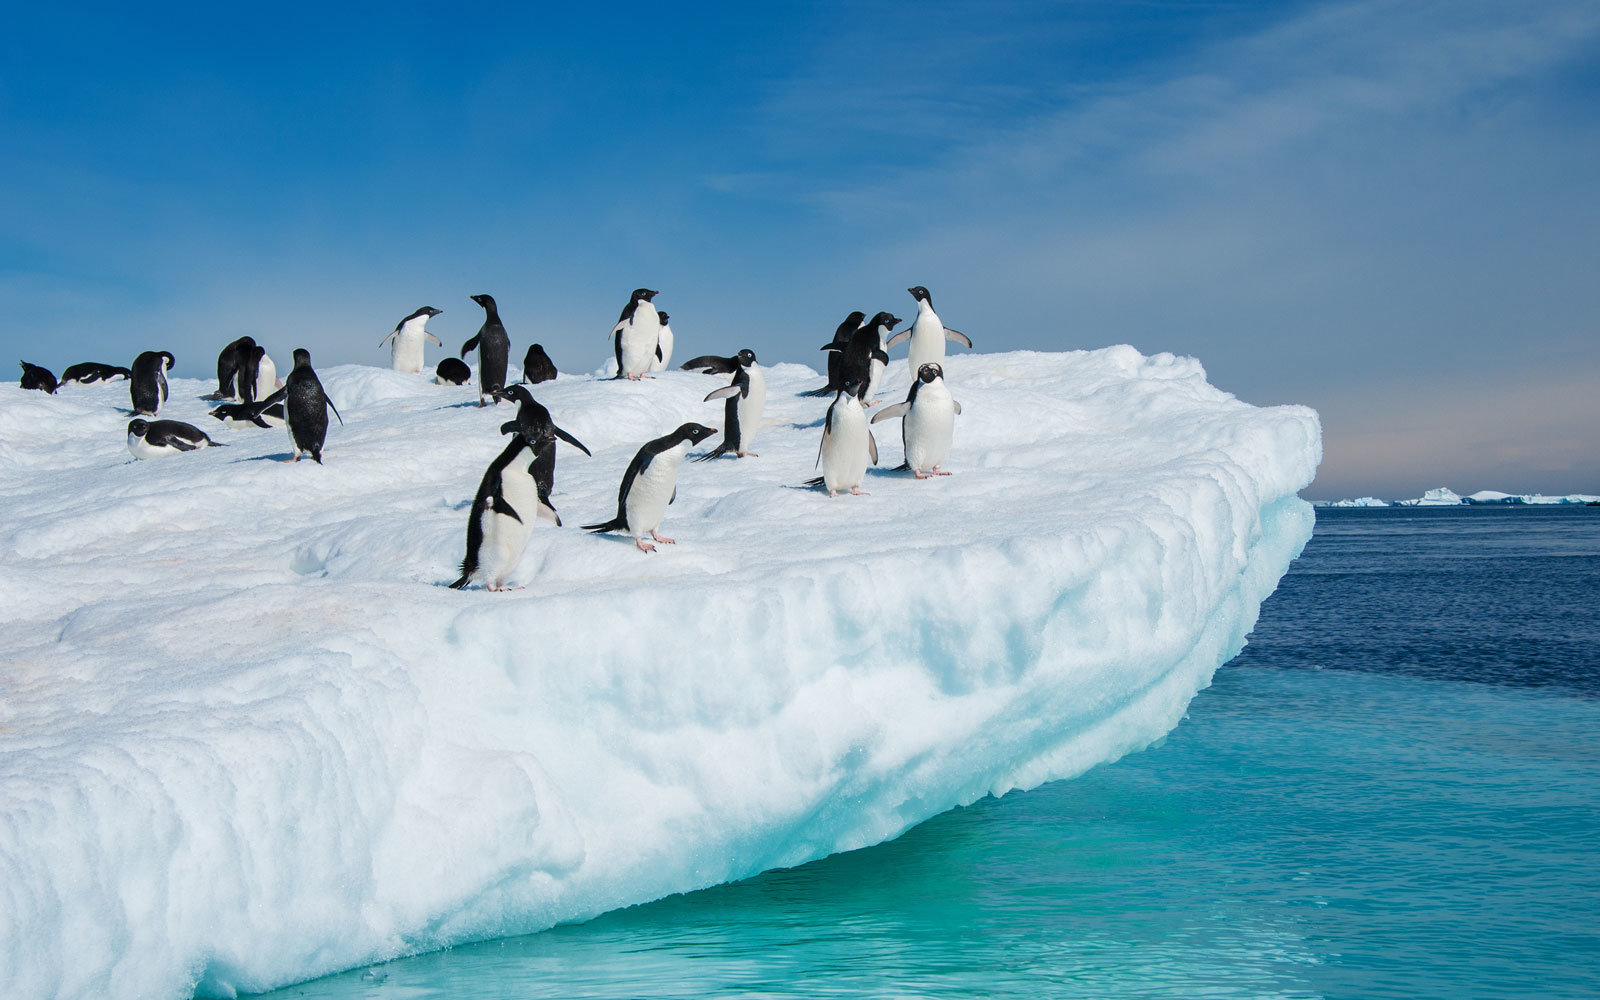 antarctica-penguins-ANTARCTIC317.jpg